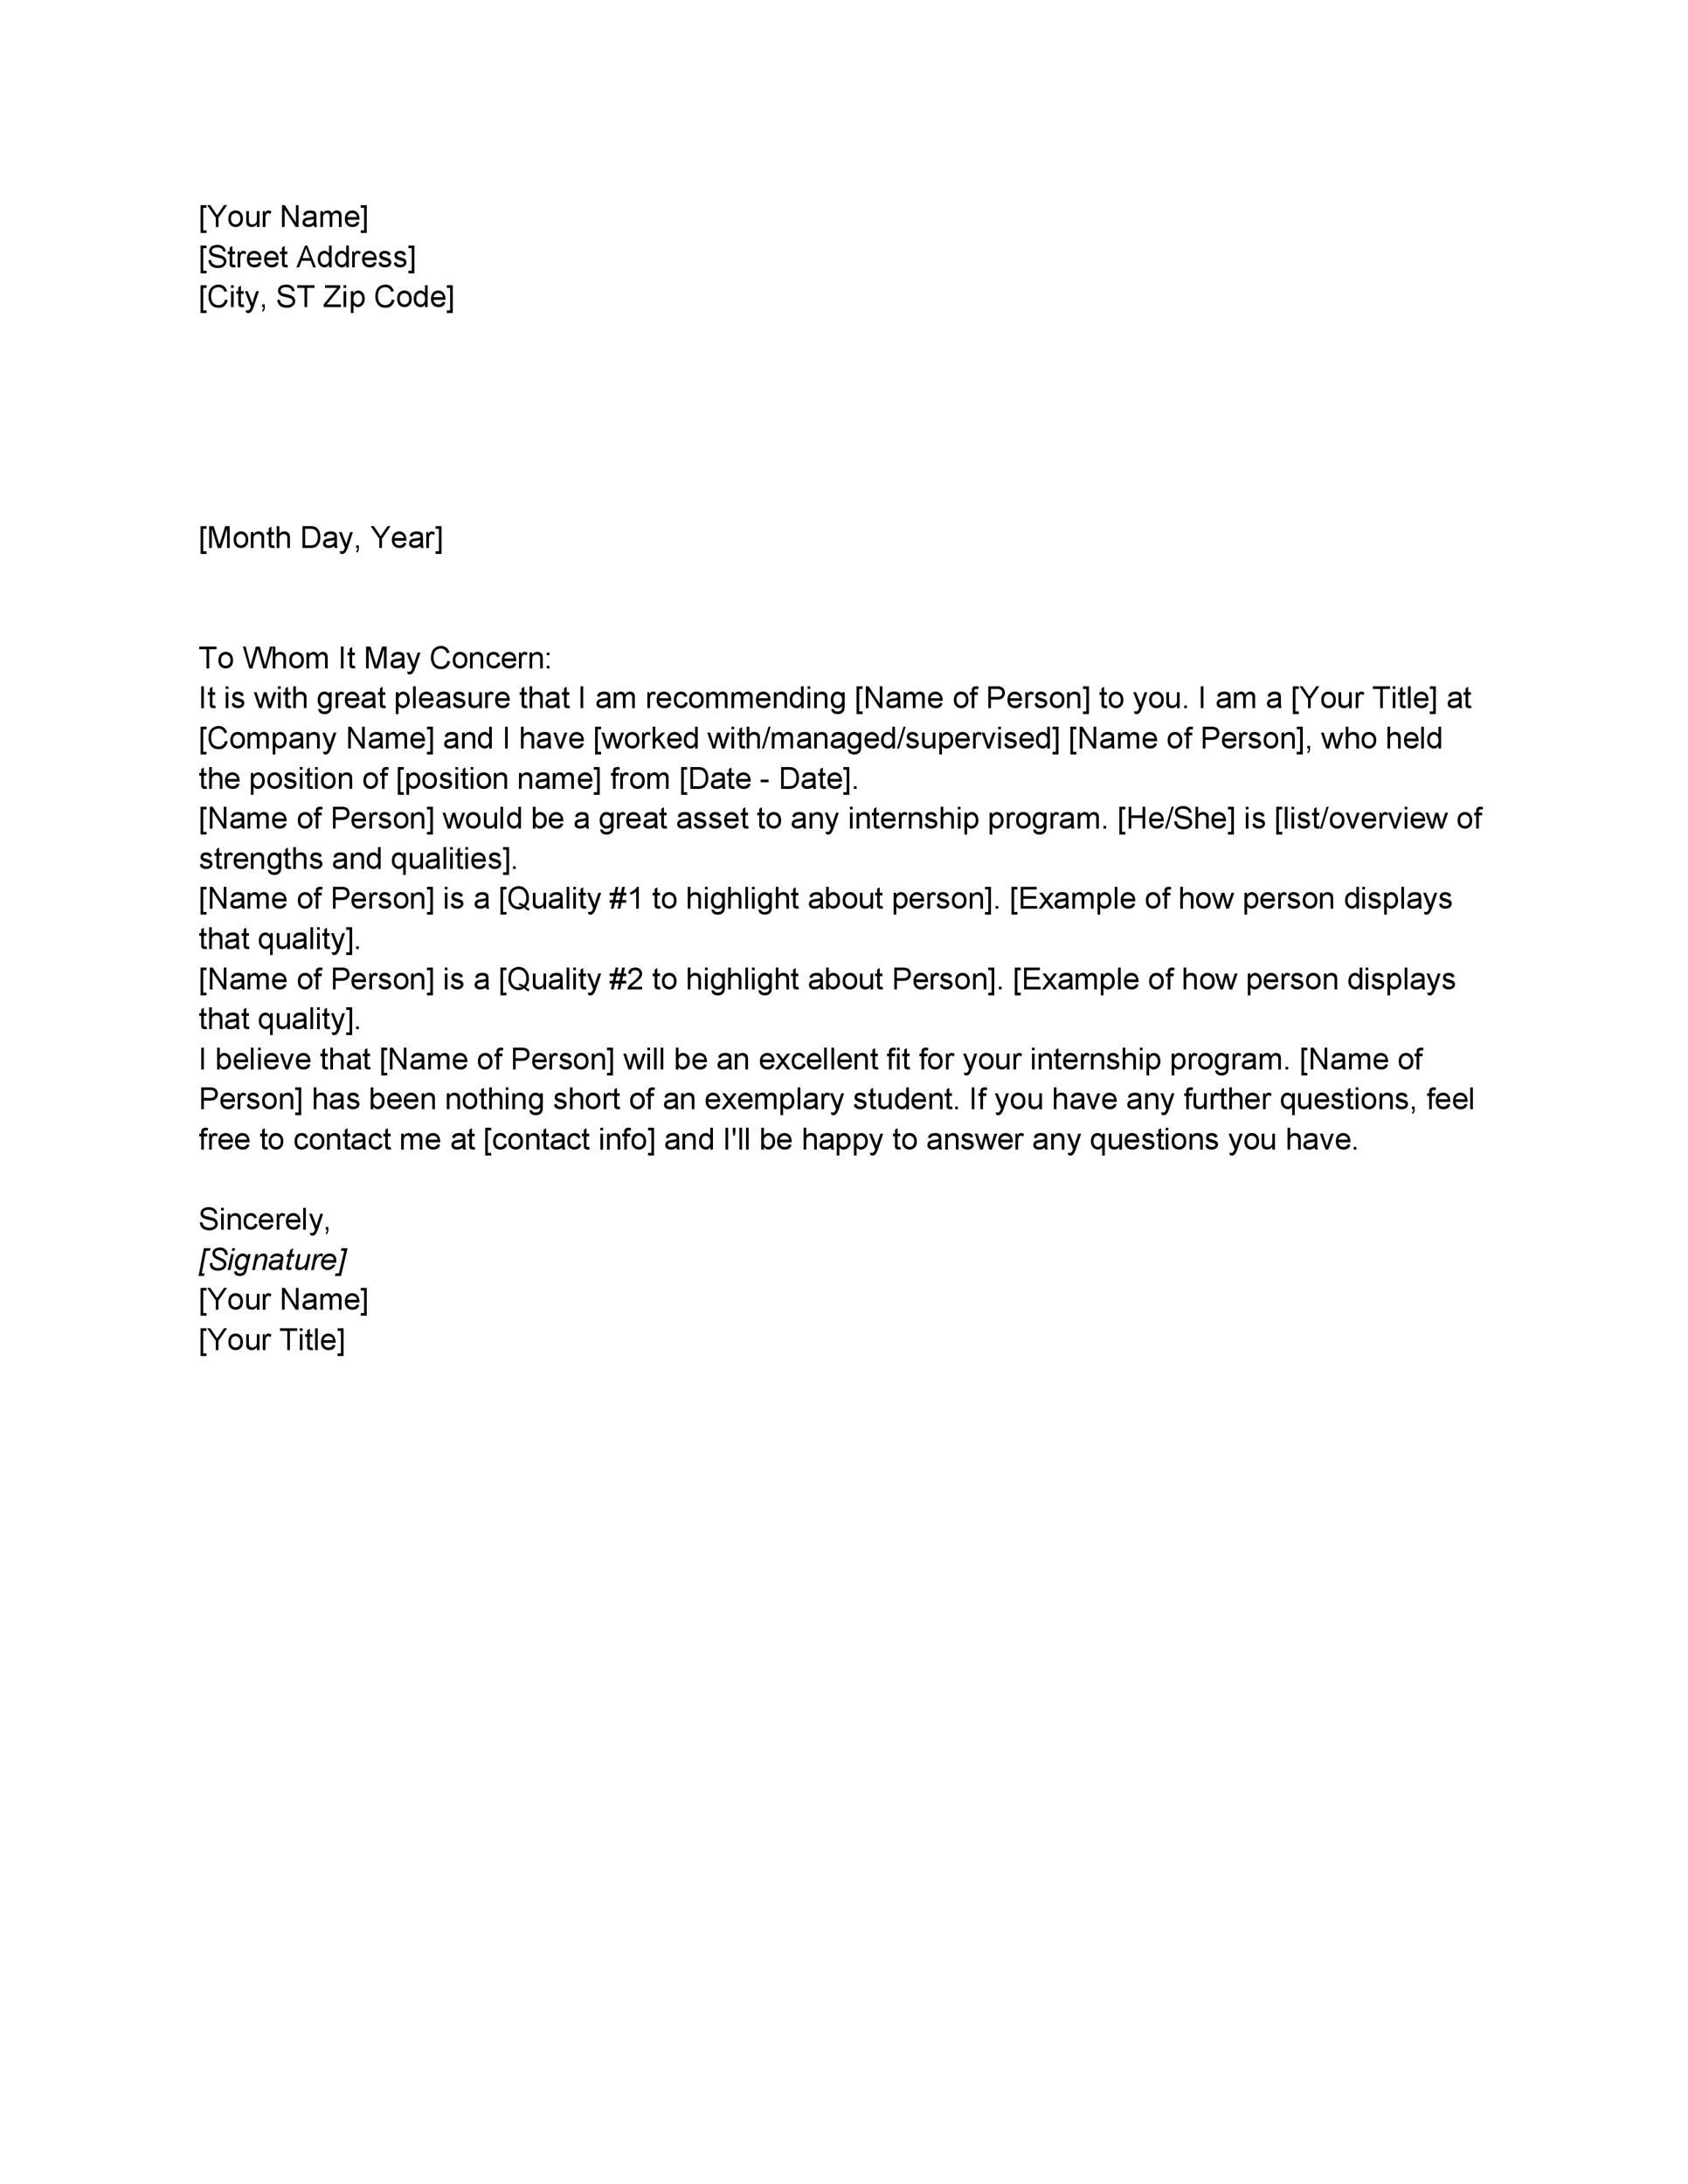 Letter Of Recommendation' from templatelab.com